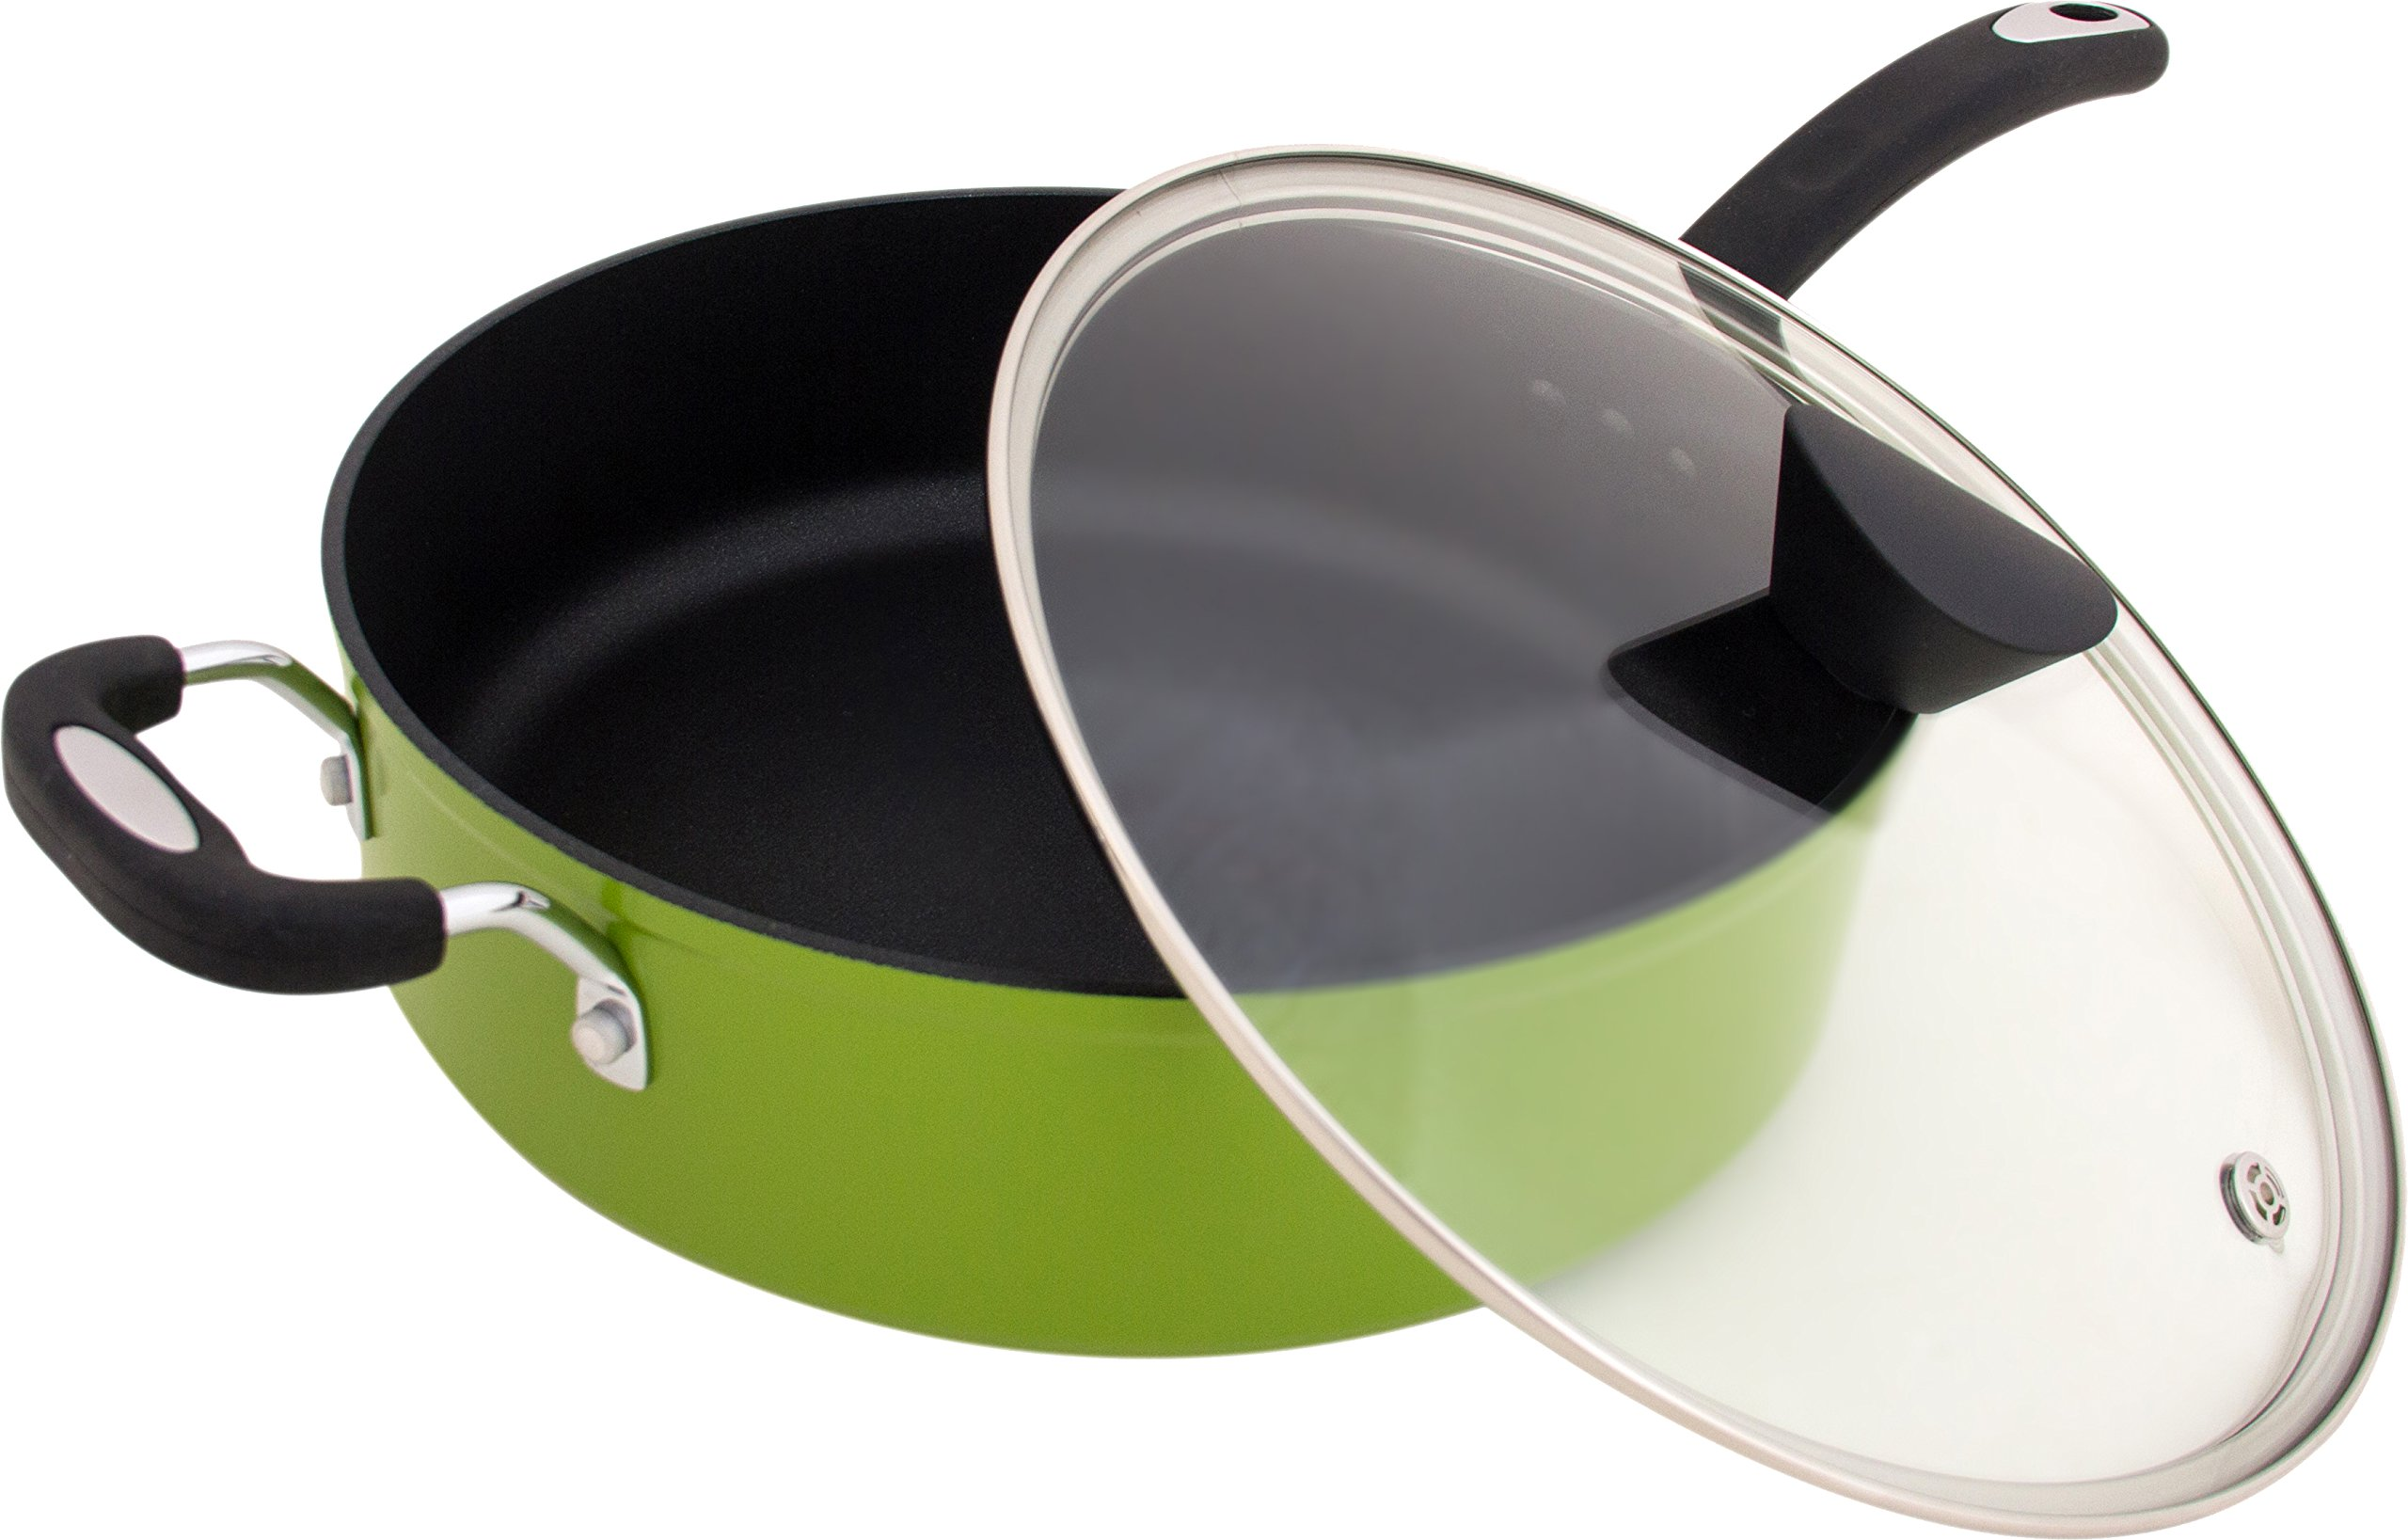 The Green Earth All-In-One Sauce Pan by Ozeri, with Ceramic Non-Stick Coating from Germany (100% PFOA & APEO Free)